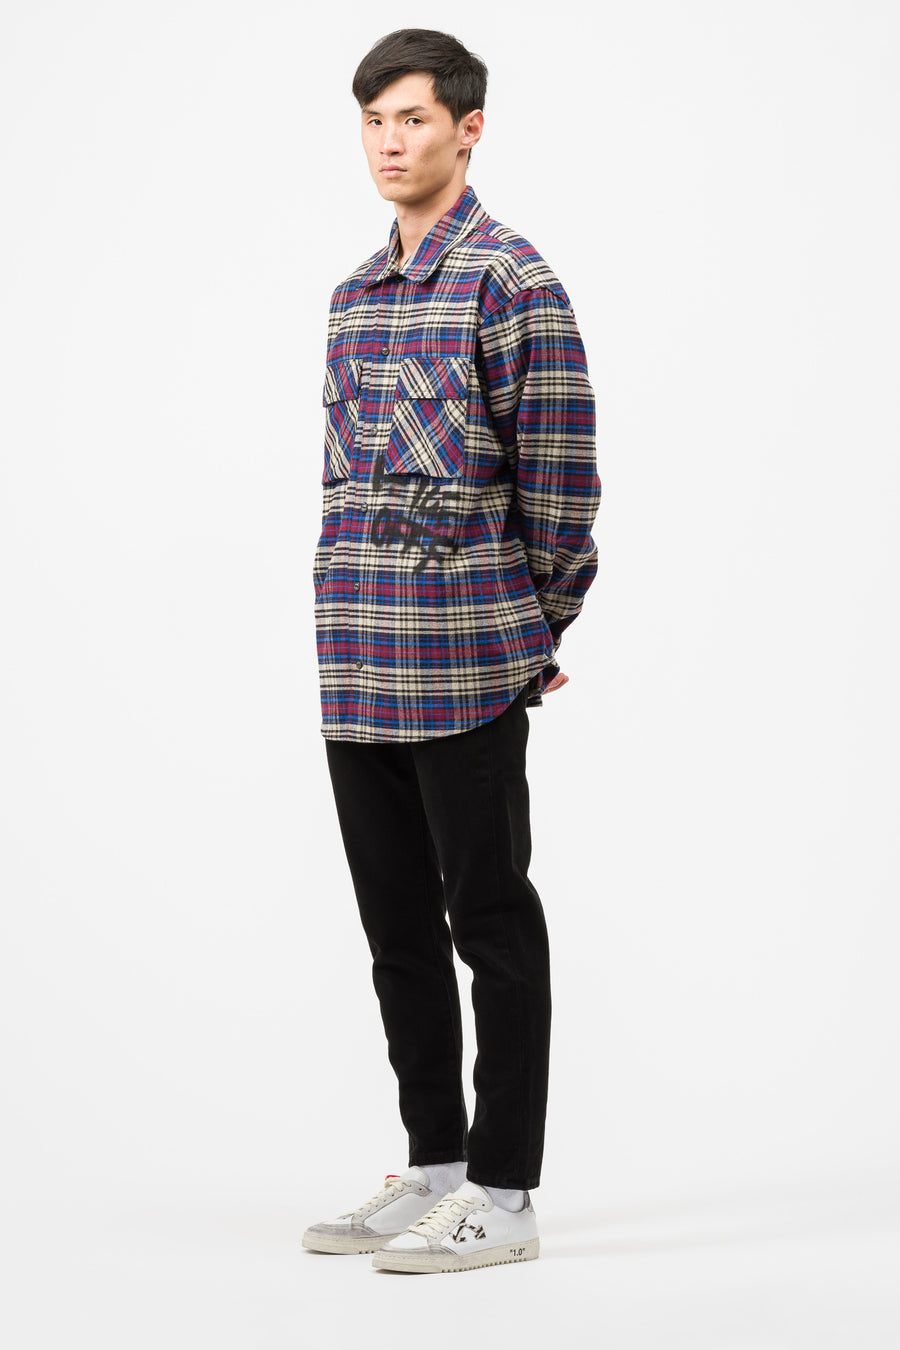 Off-White Flannel Check Shirt in Blue/Black - Notre